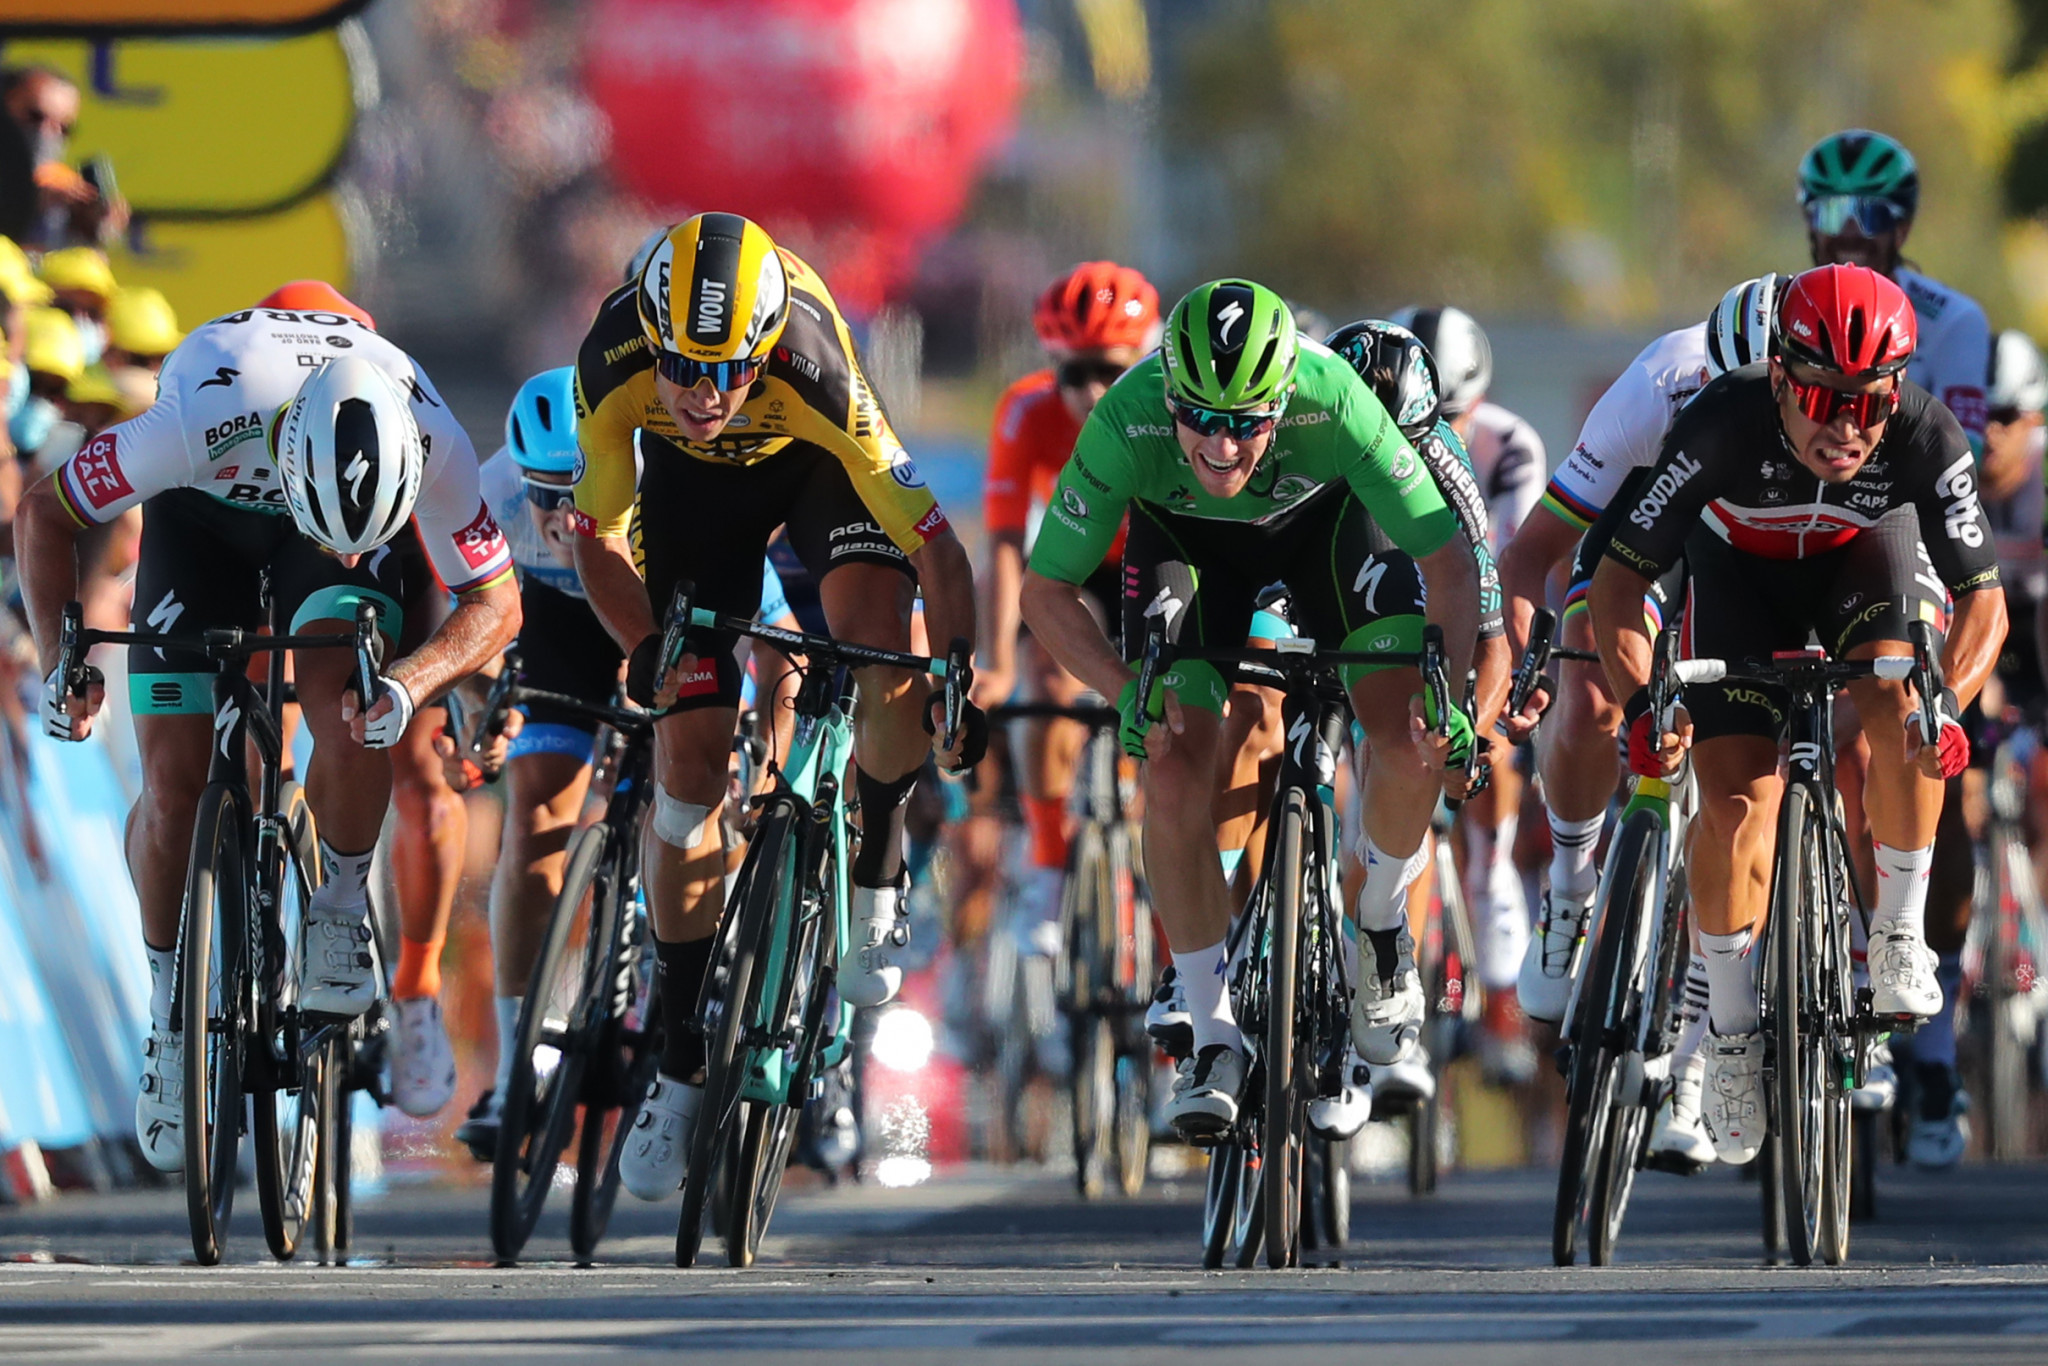 Peter Sagan, left, moments before shoulder barging Wout van Aert, second from left, in the final sprint ©Getty Images